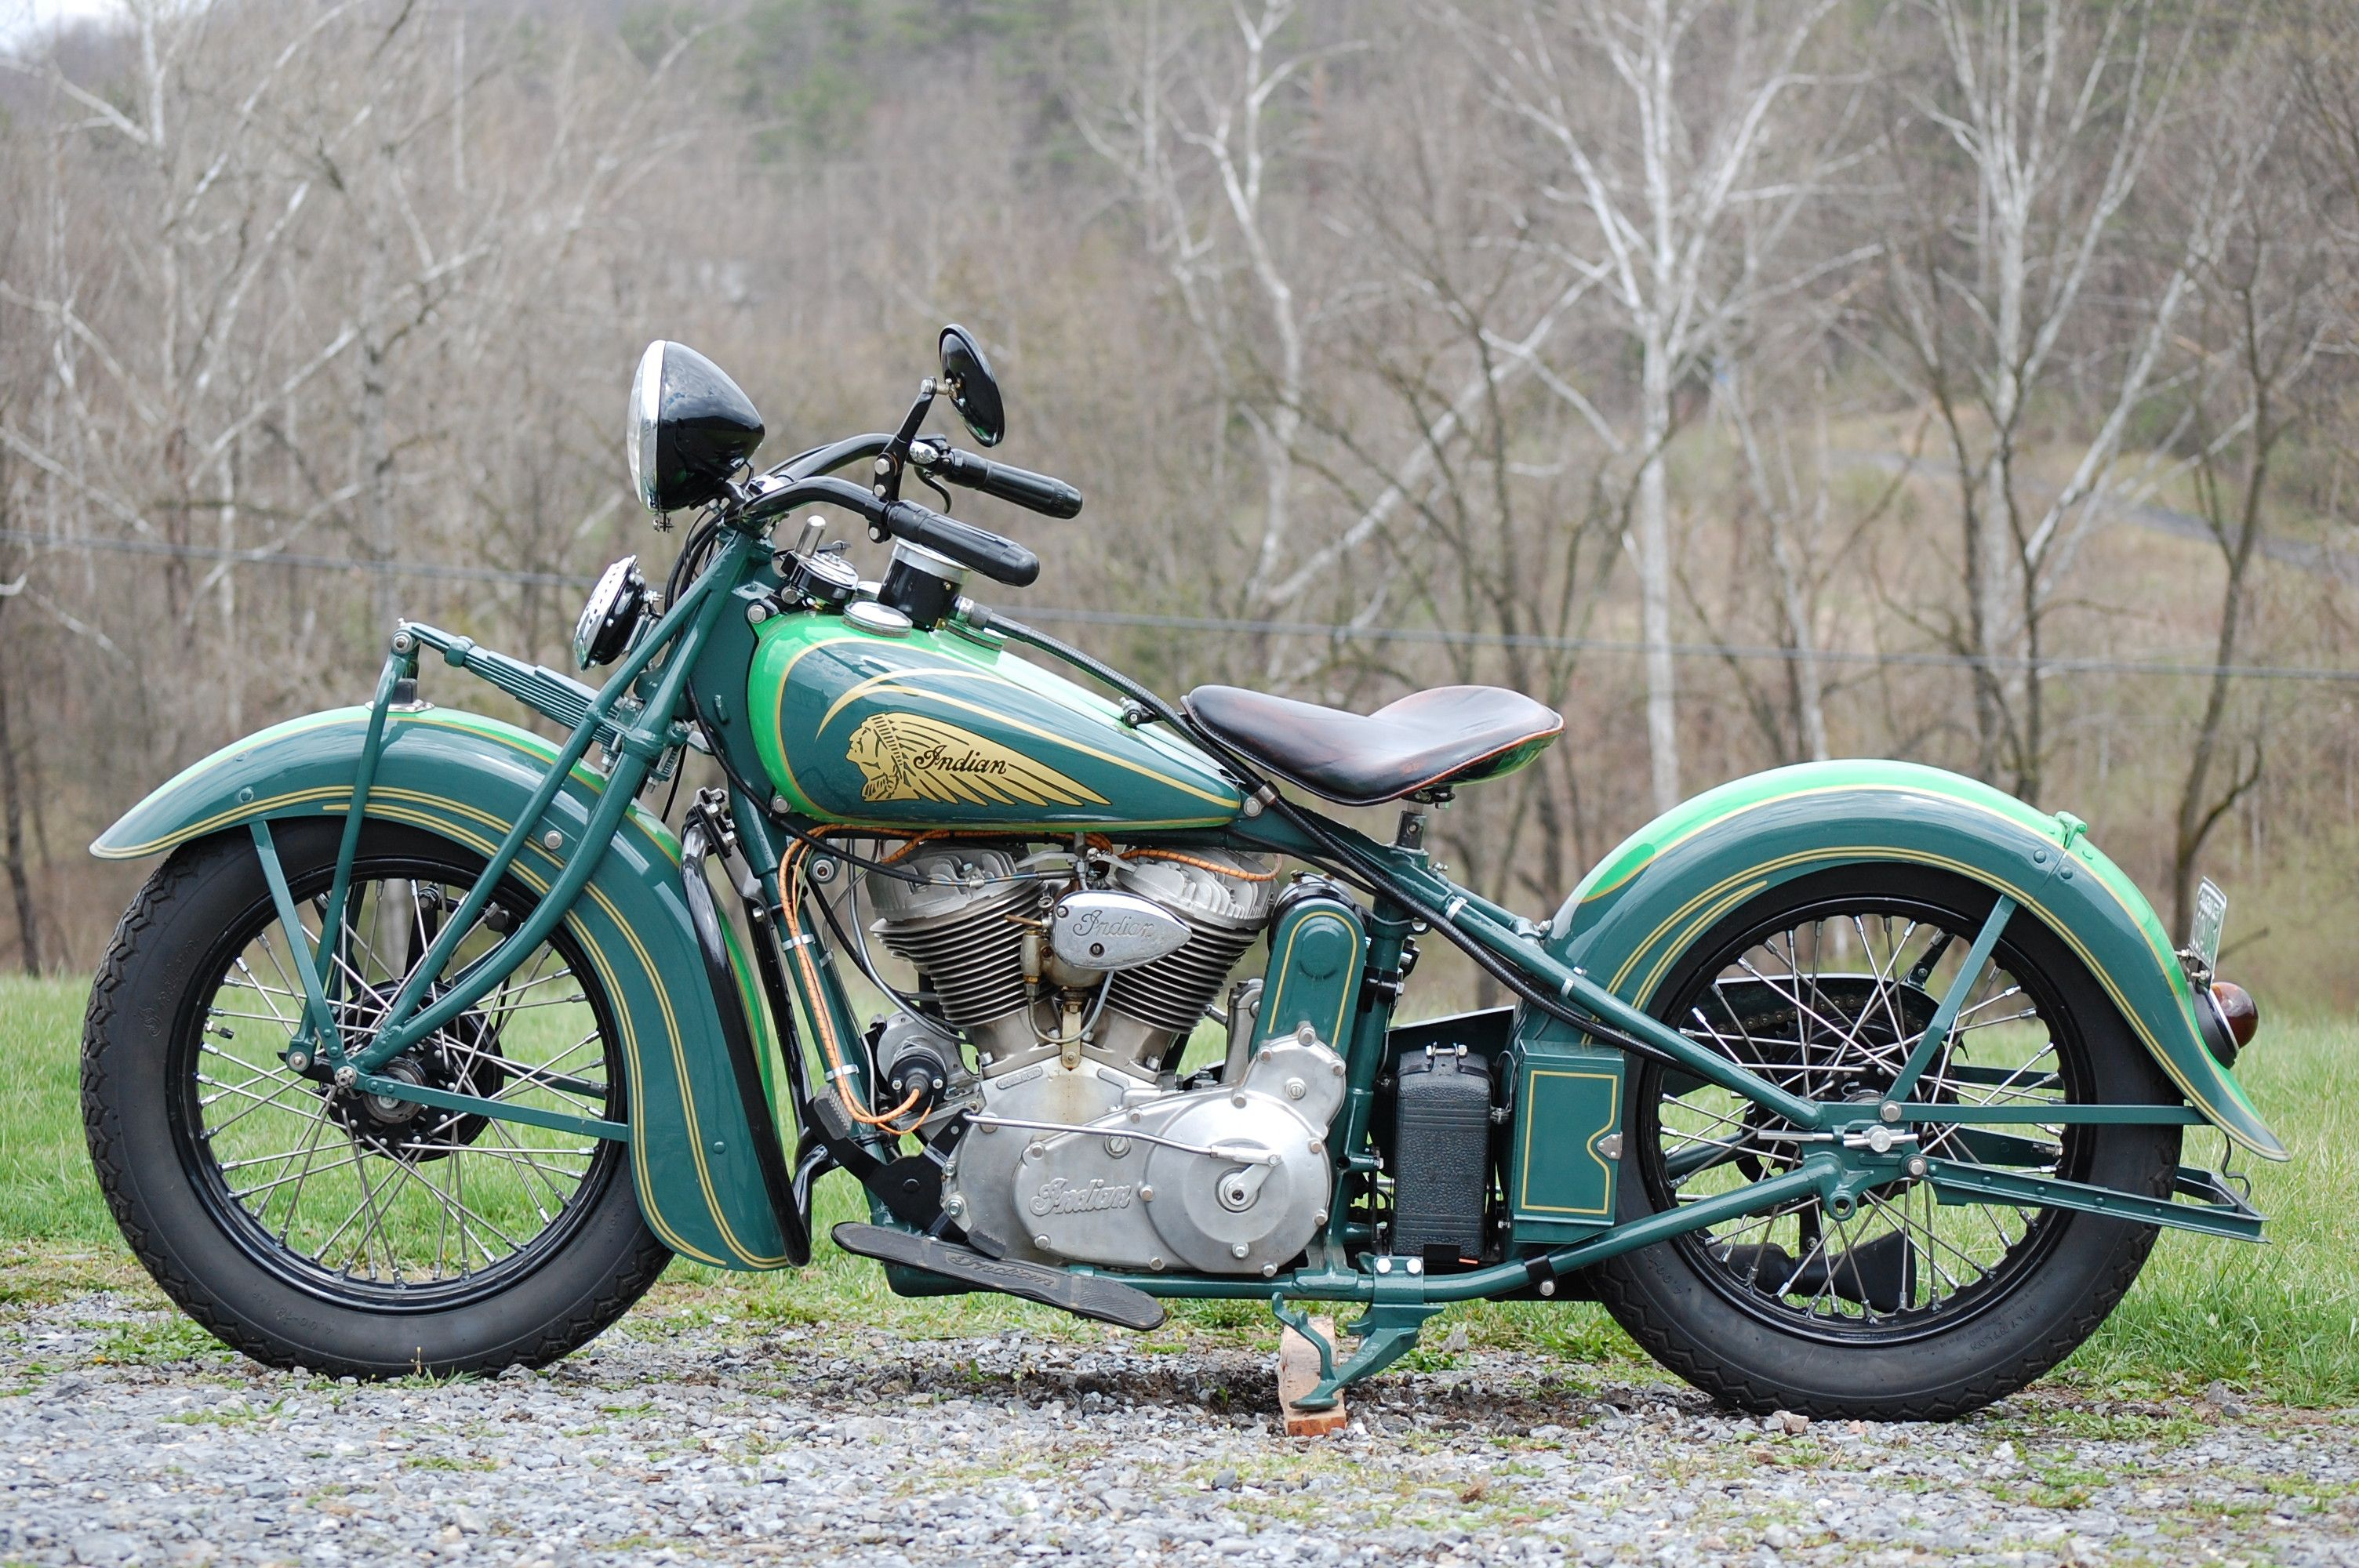 1937 Indian Chief Nature Green For A Country Ride Custom Made Bike For A Casual Ride Nice D Indian Motorcycle Vintage Indian Motorcycles Vintage Motorcycles